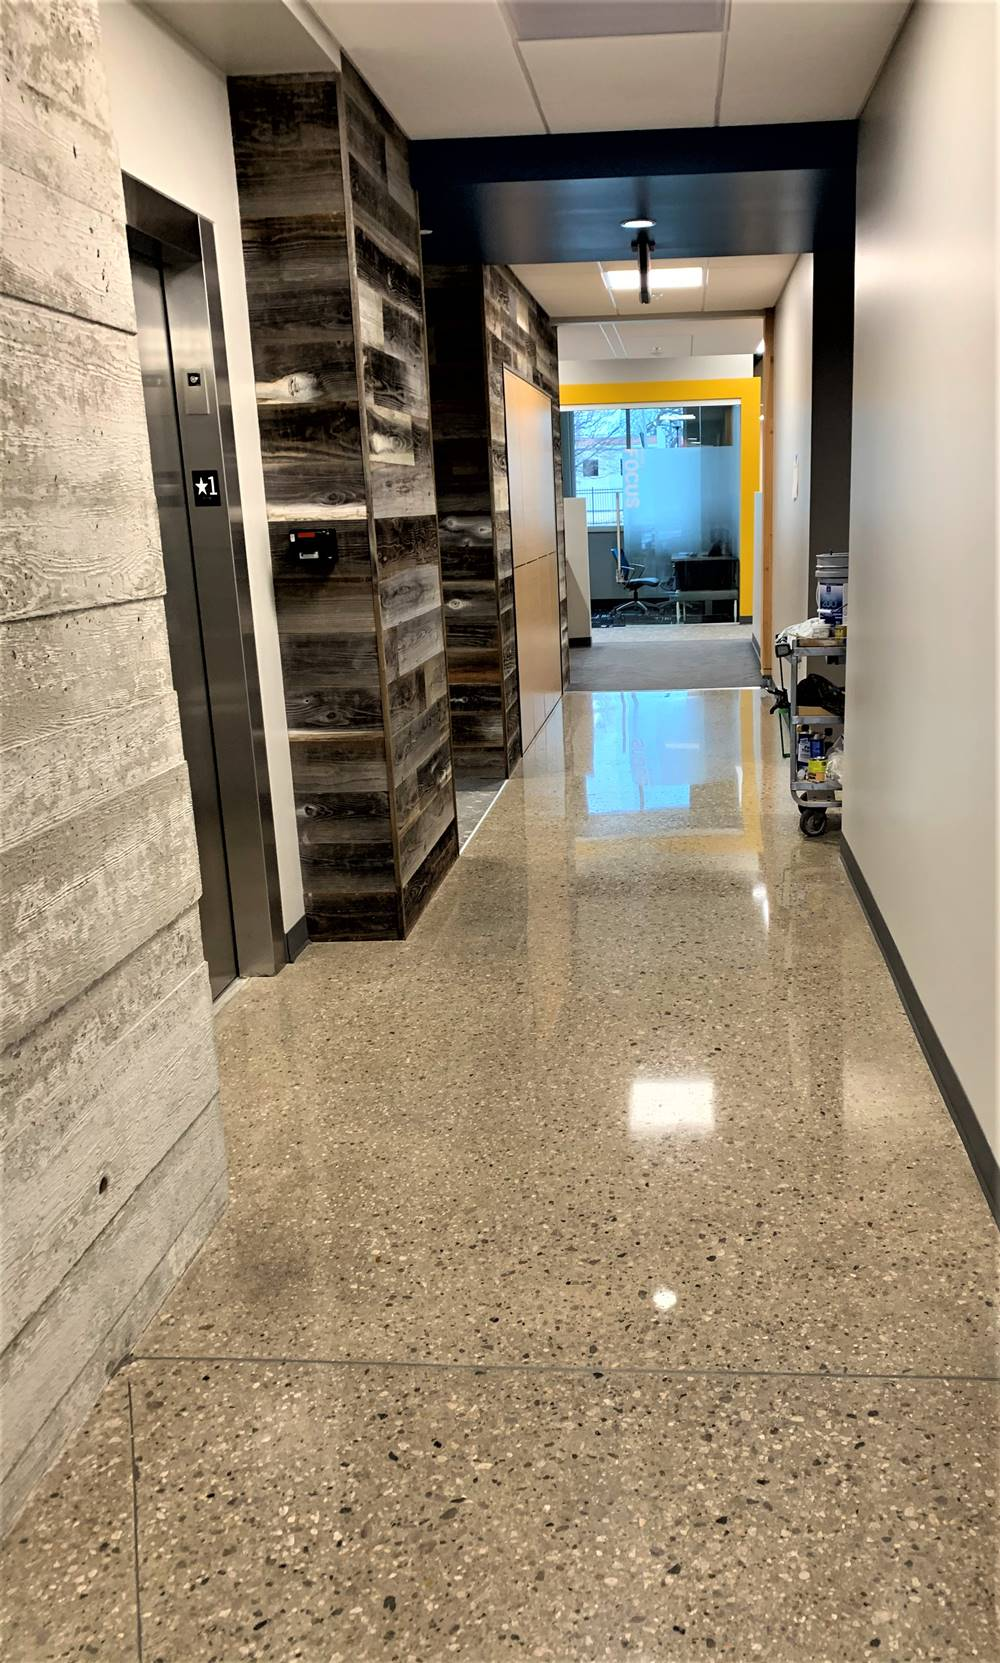 this hallway shows the results of using Skudo's commercial protection systems to protect the floor.